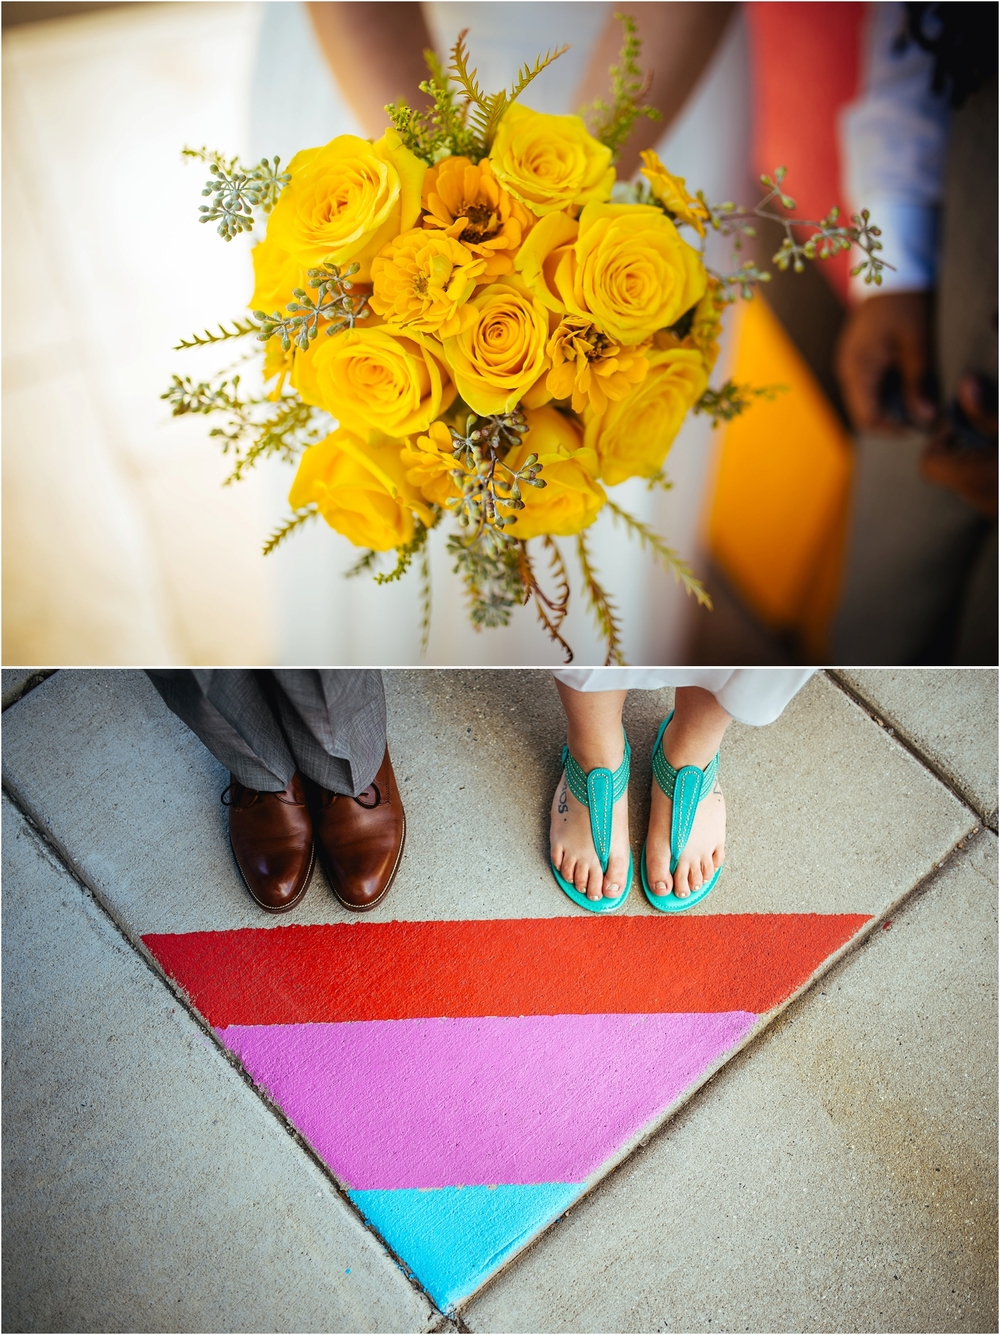 A Lovely Photo Wedding Photography brides' feet by triangle painted on sidewalk and bouquet